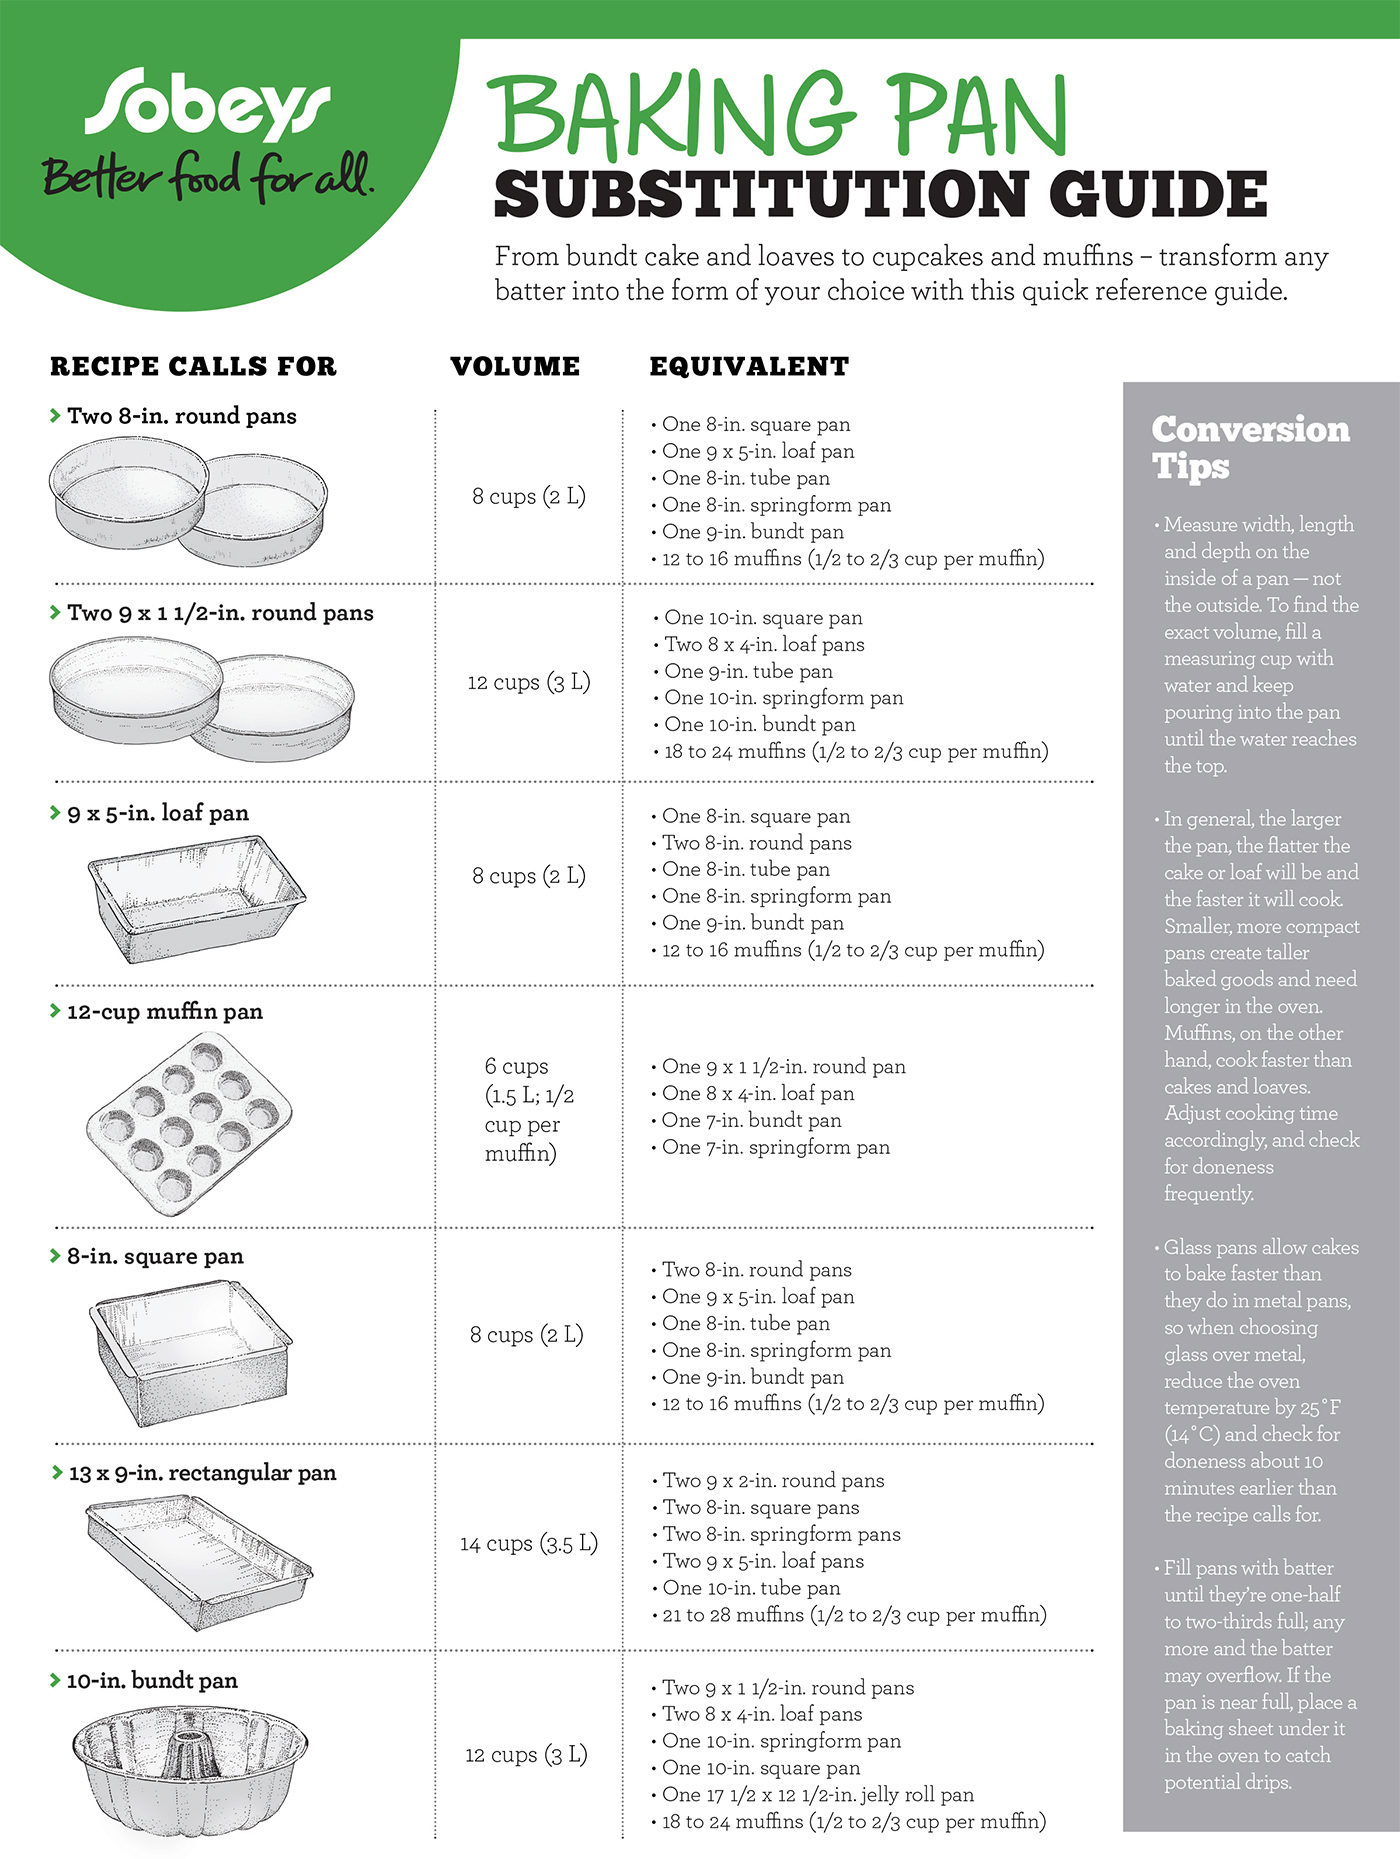 Baking Pan Substitution Guide